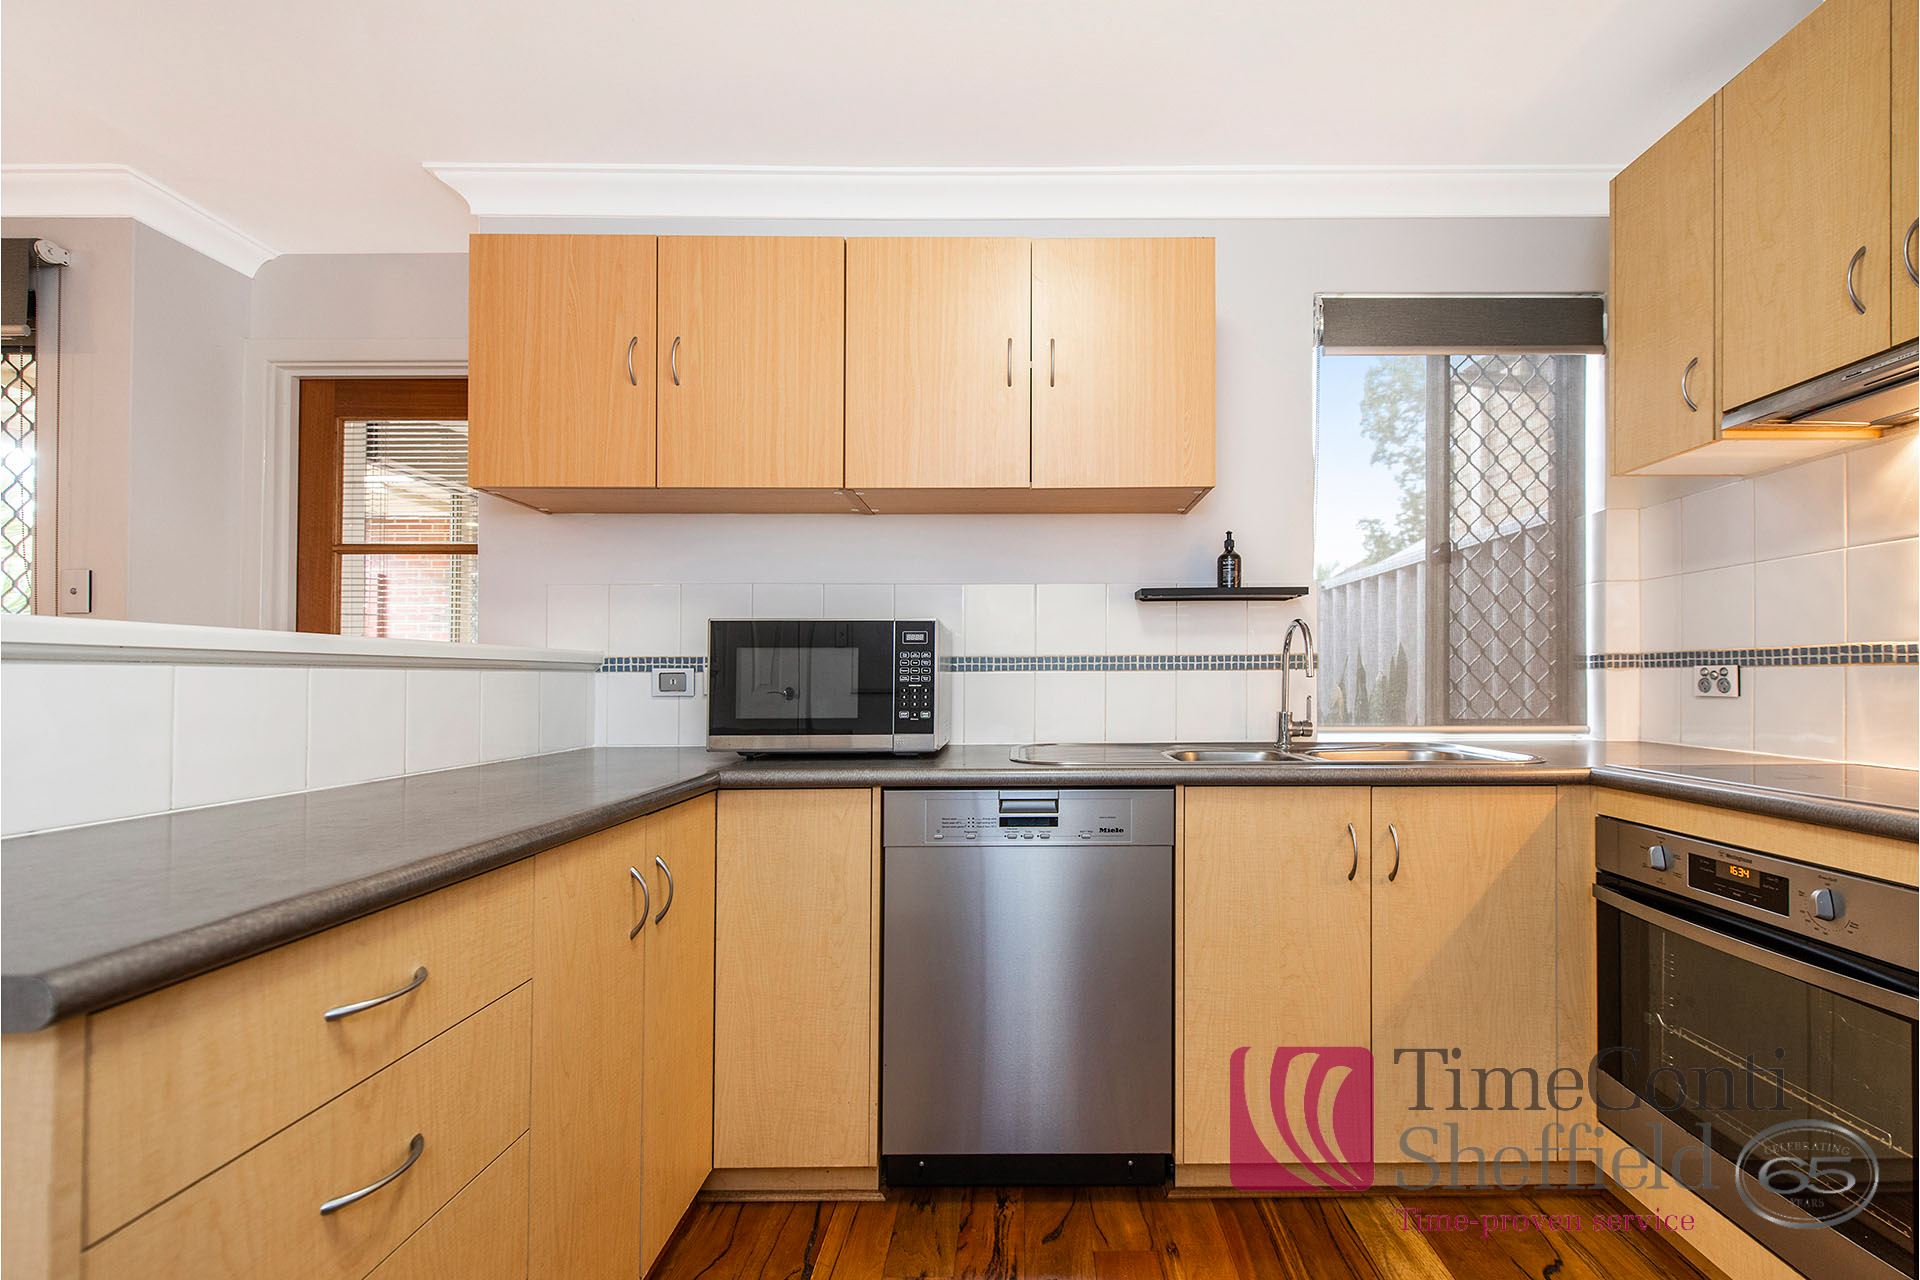 IMMACULATE FULLY FURNISHED AIR CONDITIONED HOME